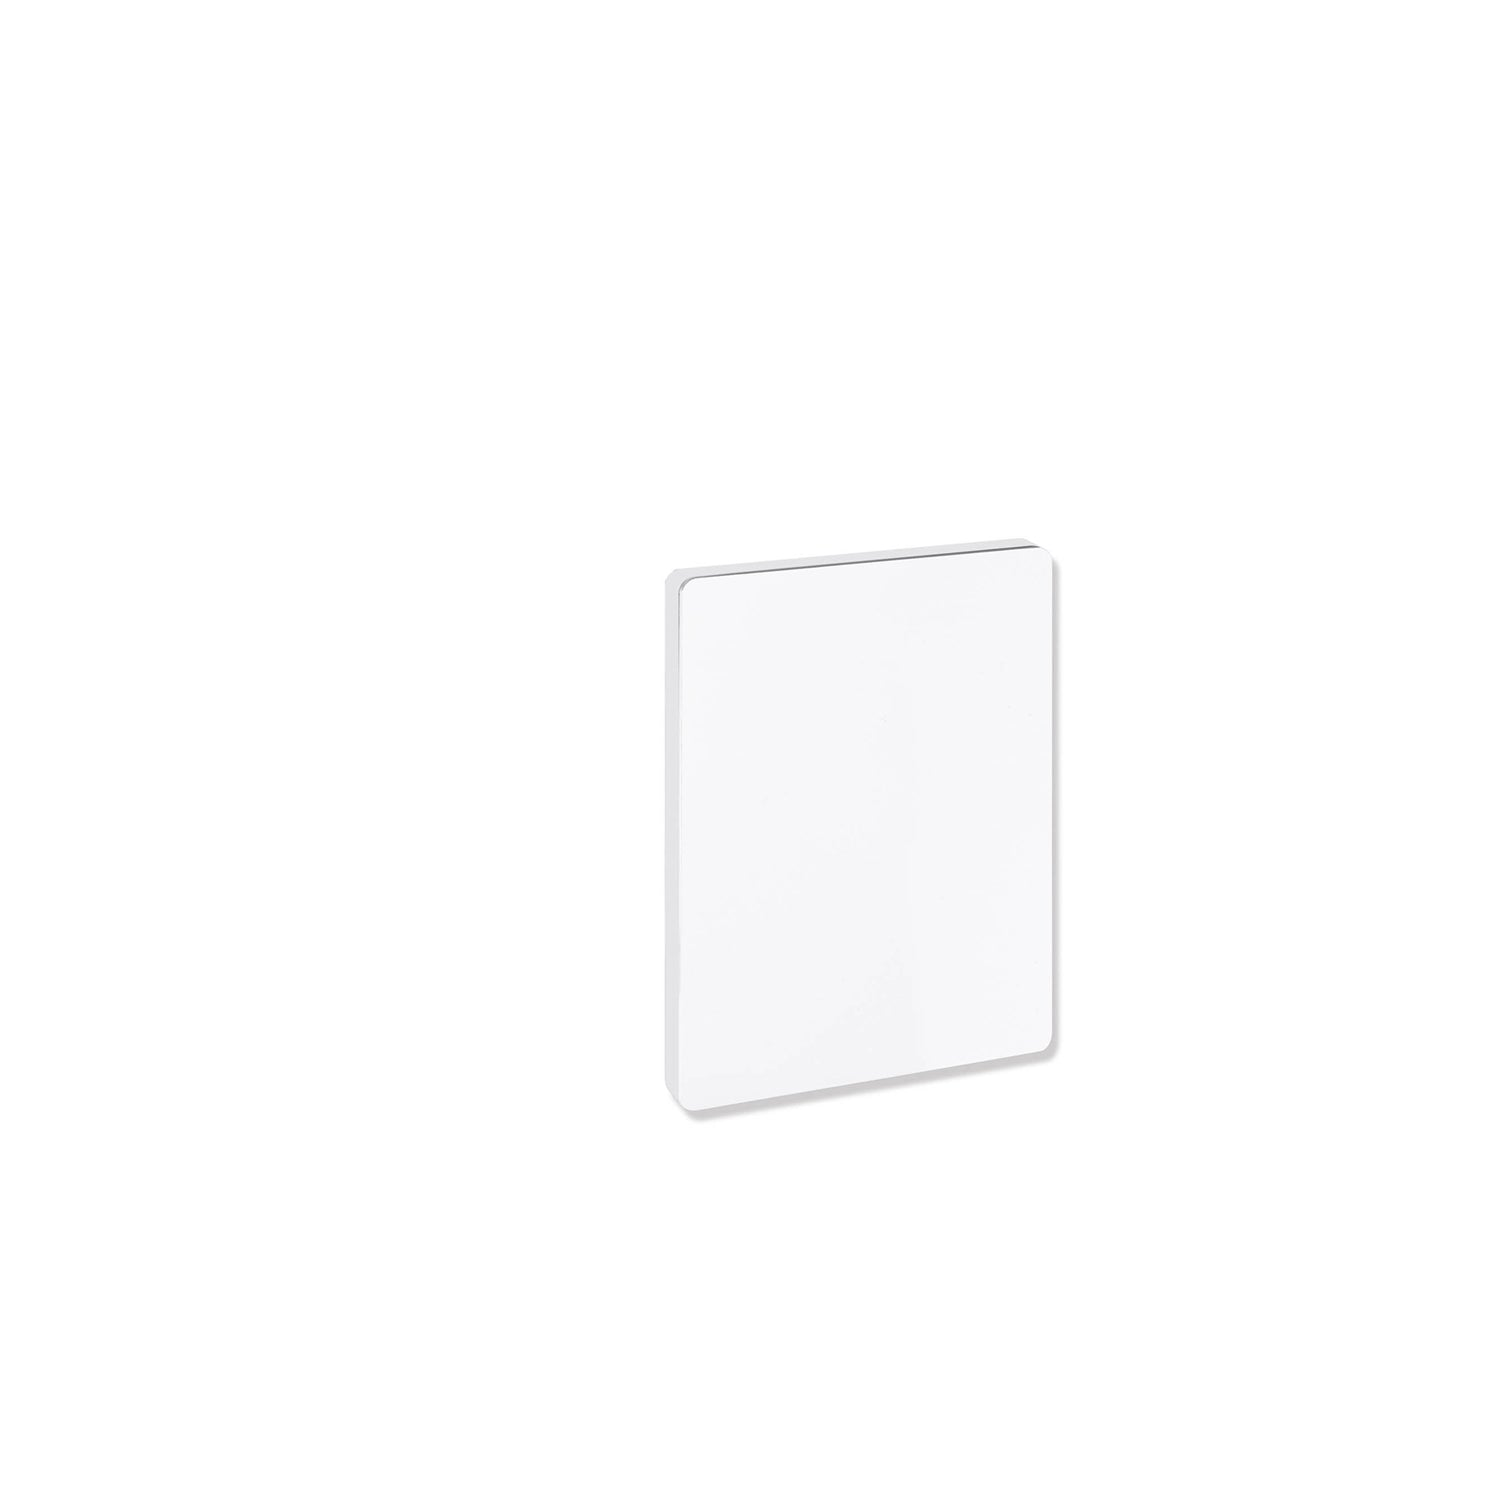 Circula Removable Hinged Grab Rail Cover with a white finish on a white background